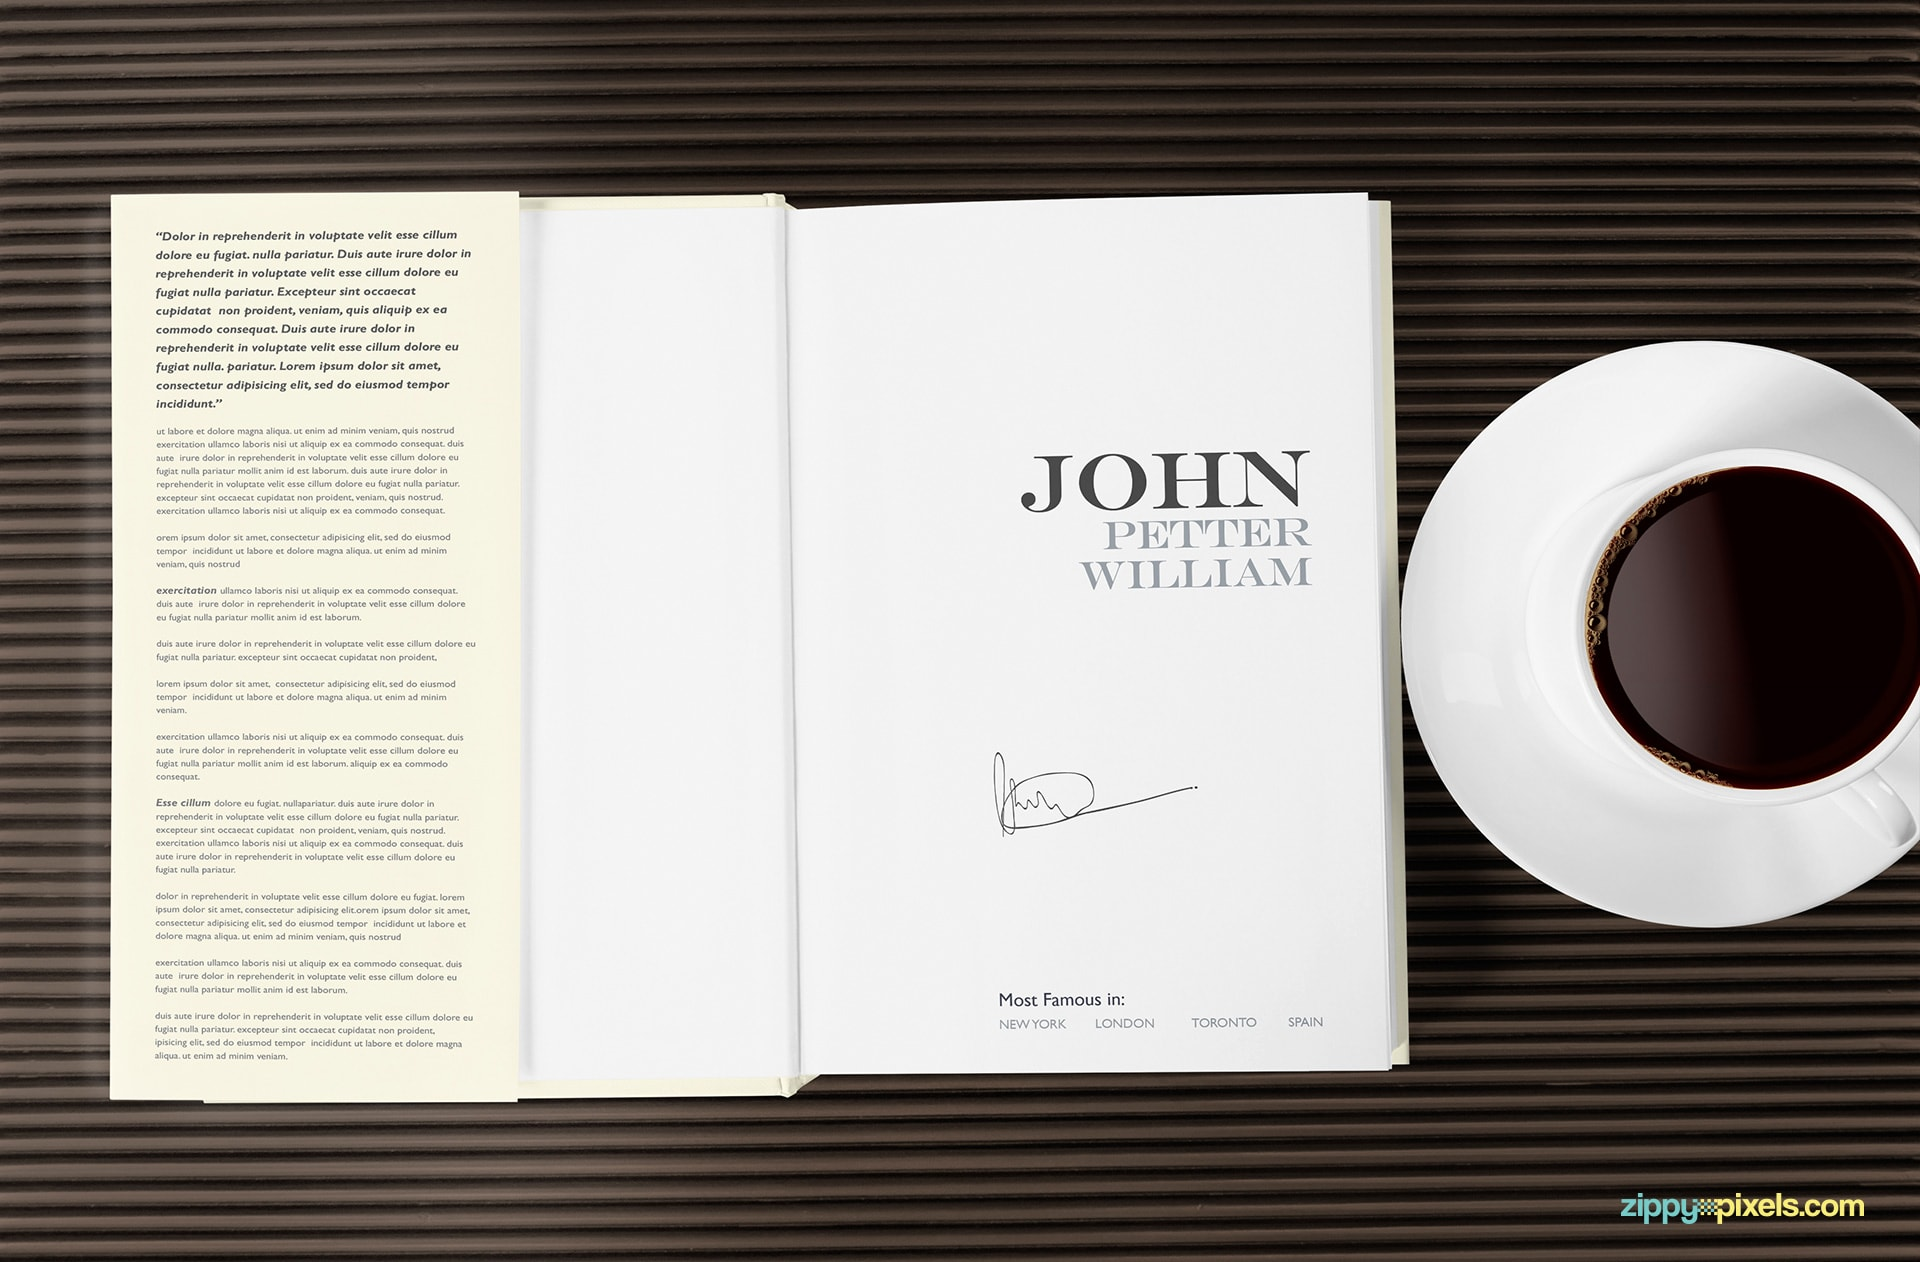 hard-cover-book-mockup-opened-first-page